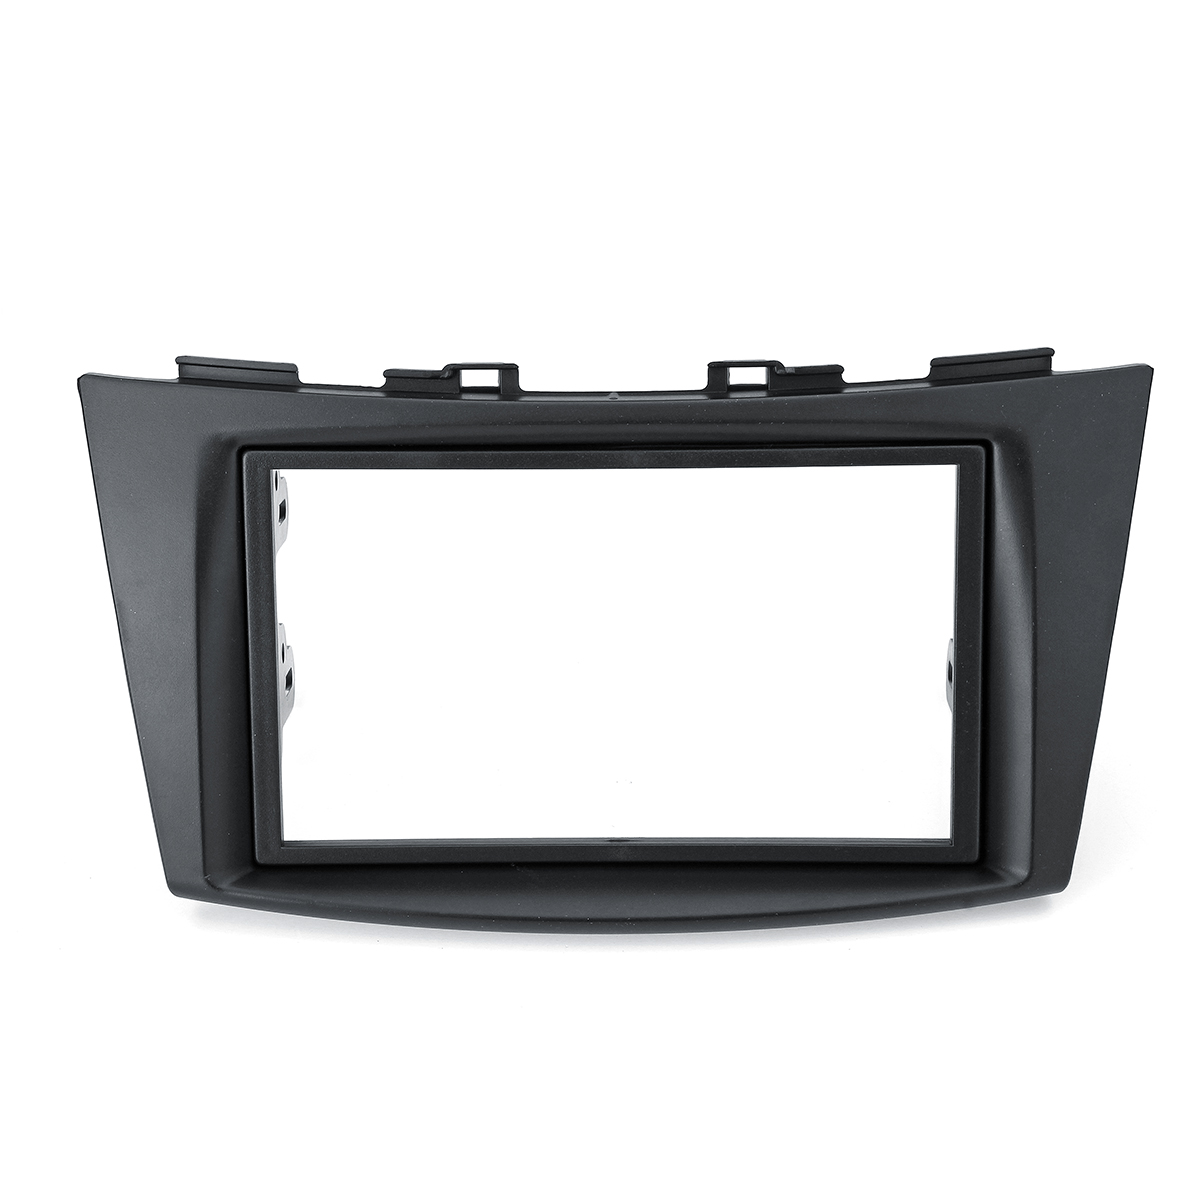 Car Dashboard Stereo Radio Fascia Panel with Plate Frame Adapter For Suzuki Swift 2011-2016